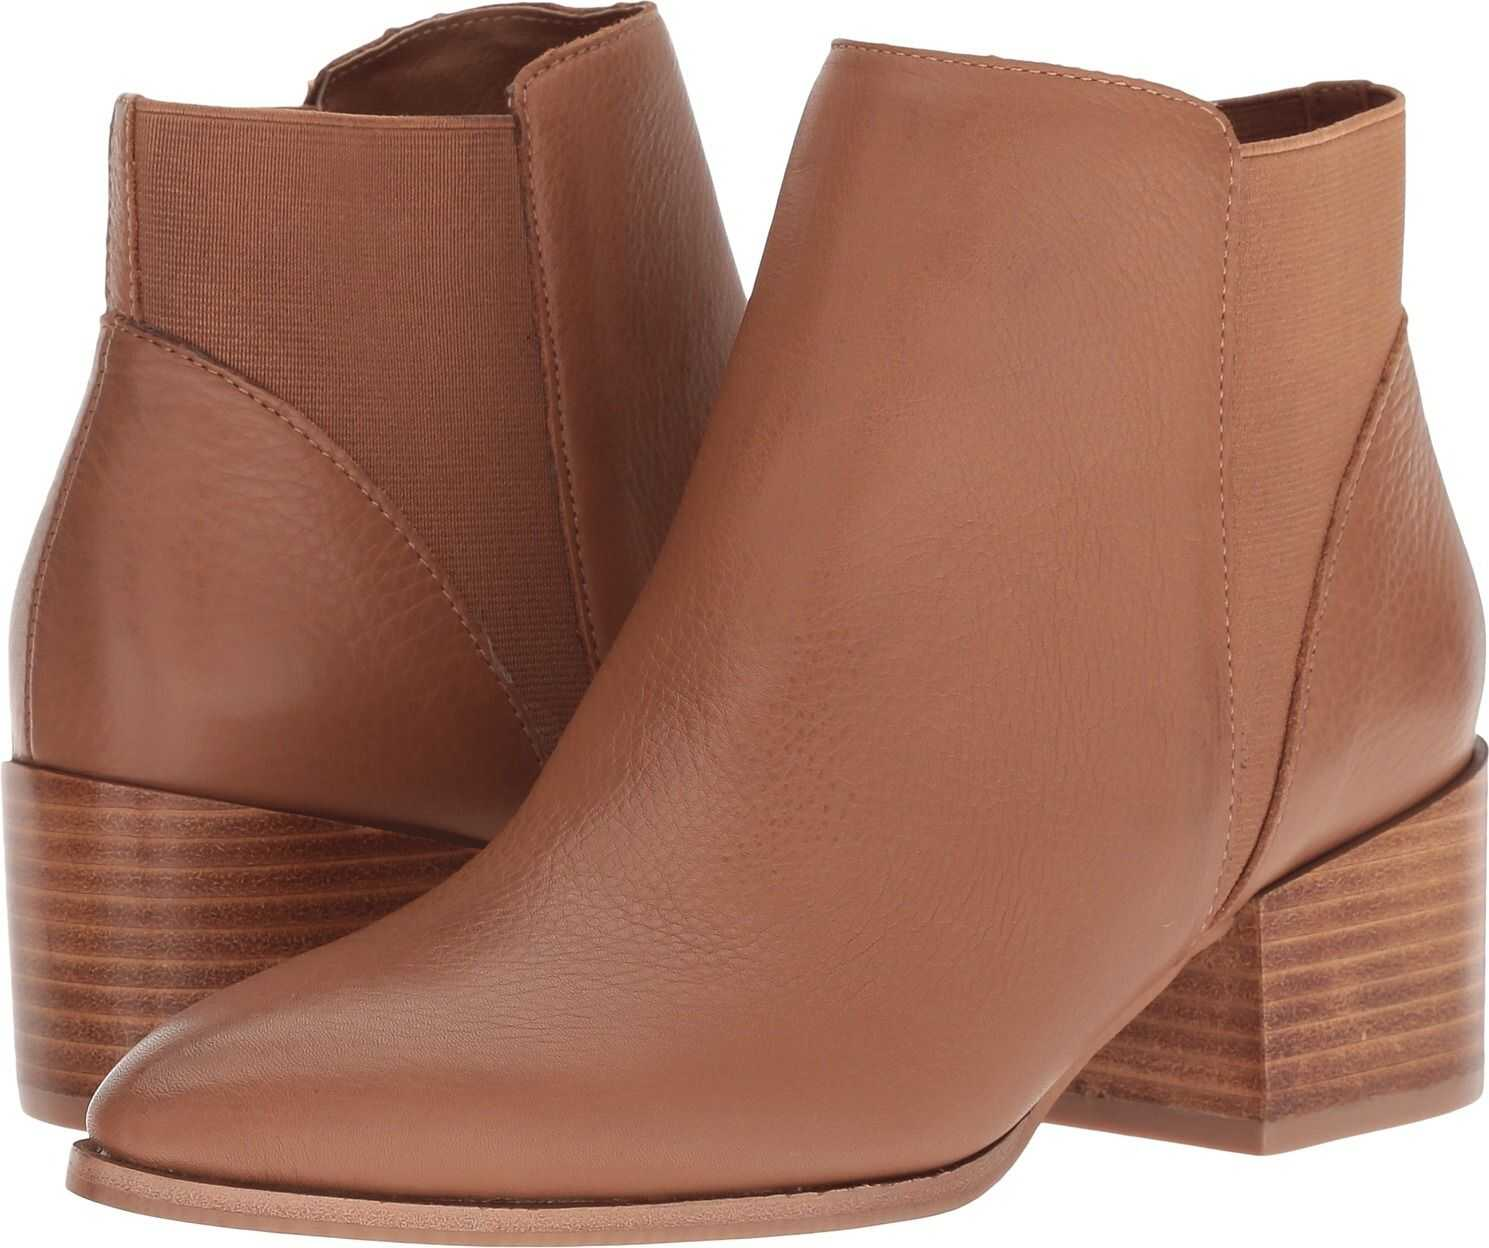 Chinese Laundry Finn Bootie Honey Brown Leather